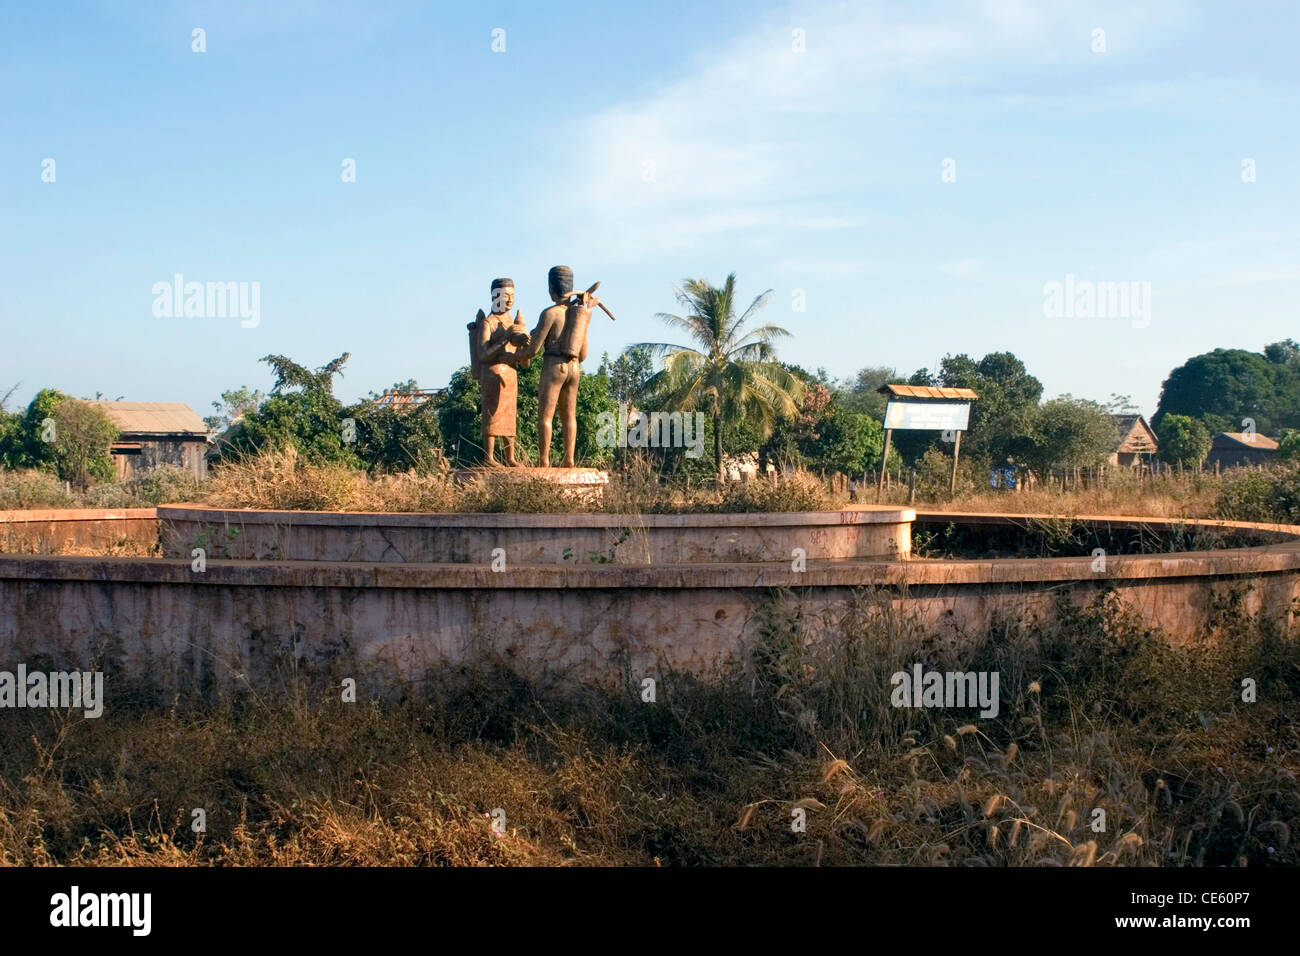 A monument to rural farmers marks a crossroads near Ban Lung in Ratanakiri Province, Cambodia. - Stock Image